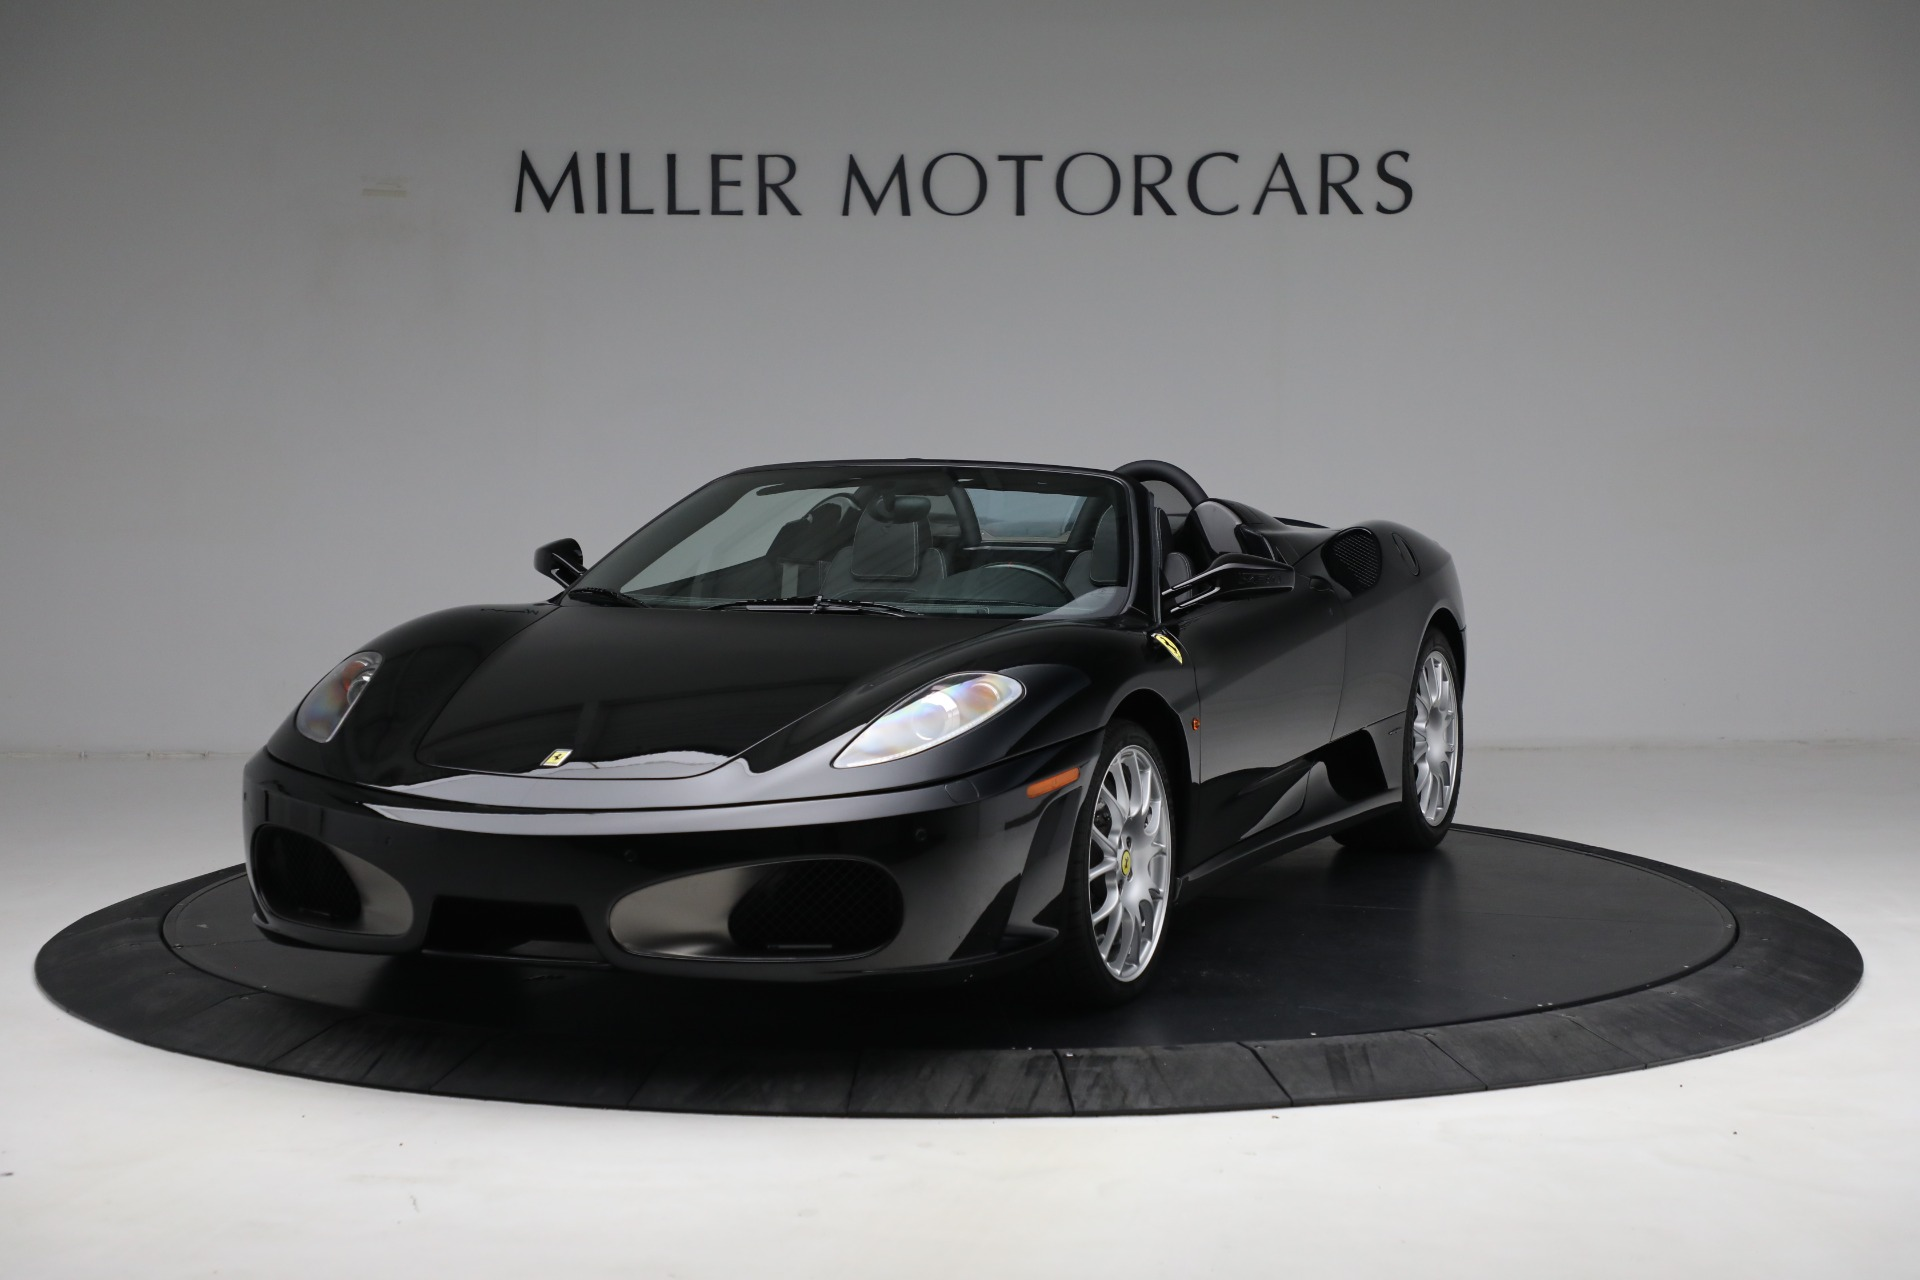 Used 2008 Ferrari F430 Spider for sale $159,900 at Pagani of Greenwich in Greenwich CT 06830 1